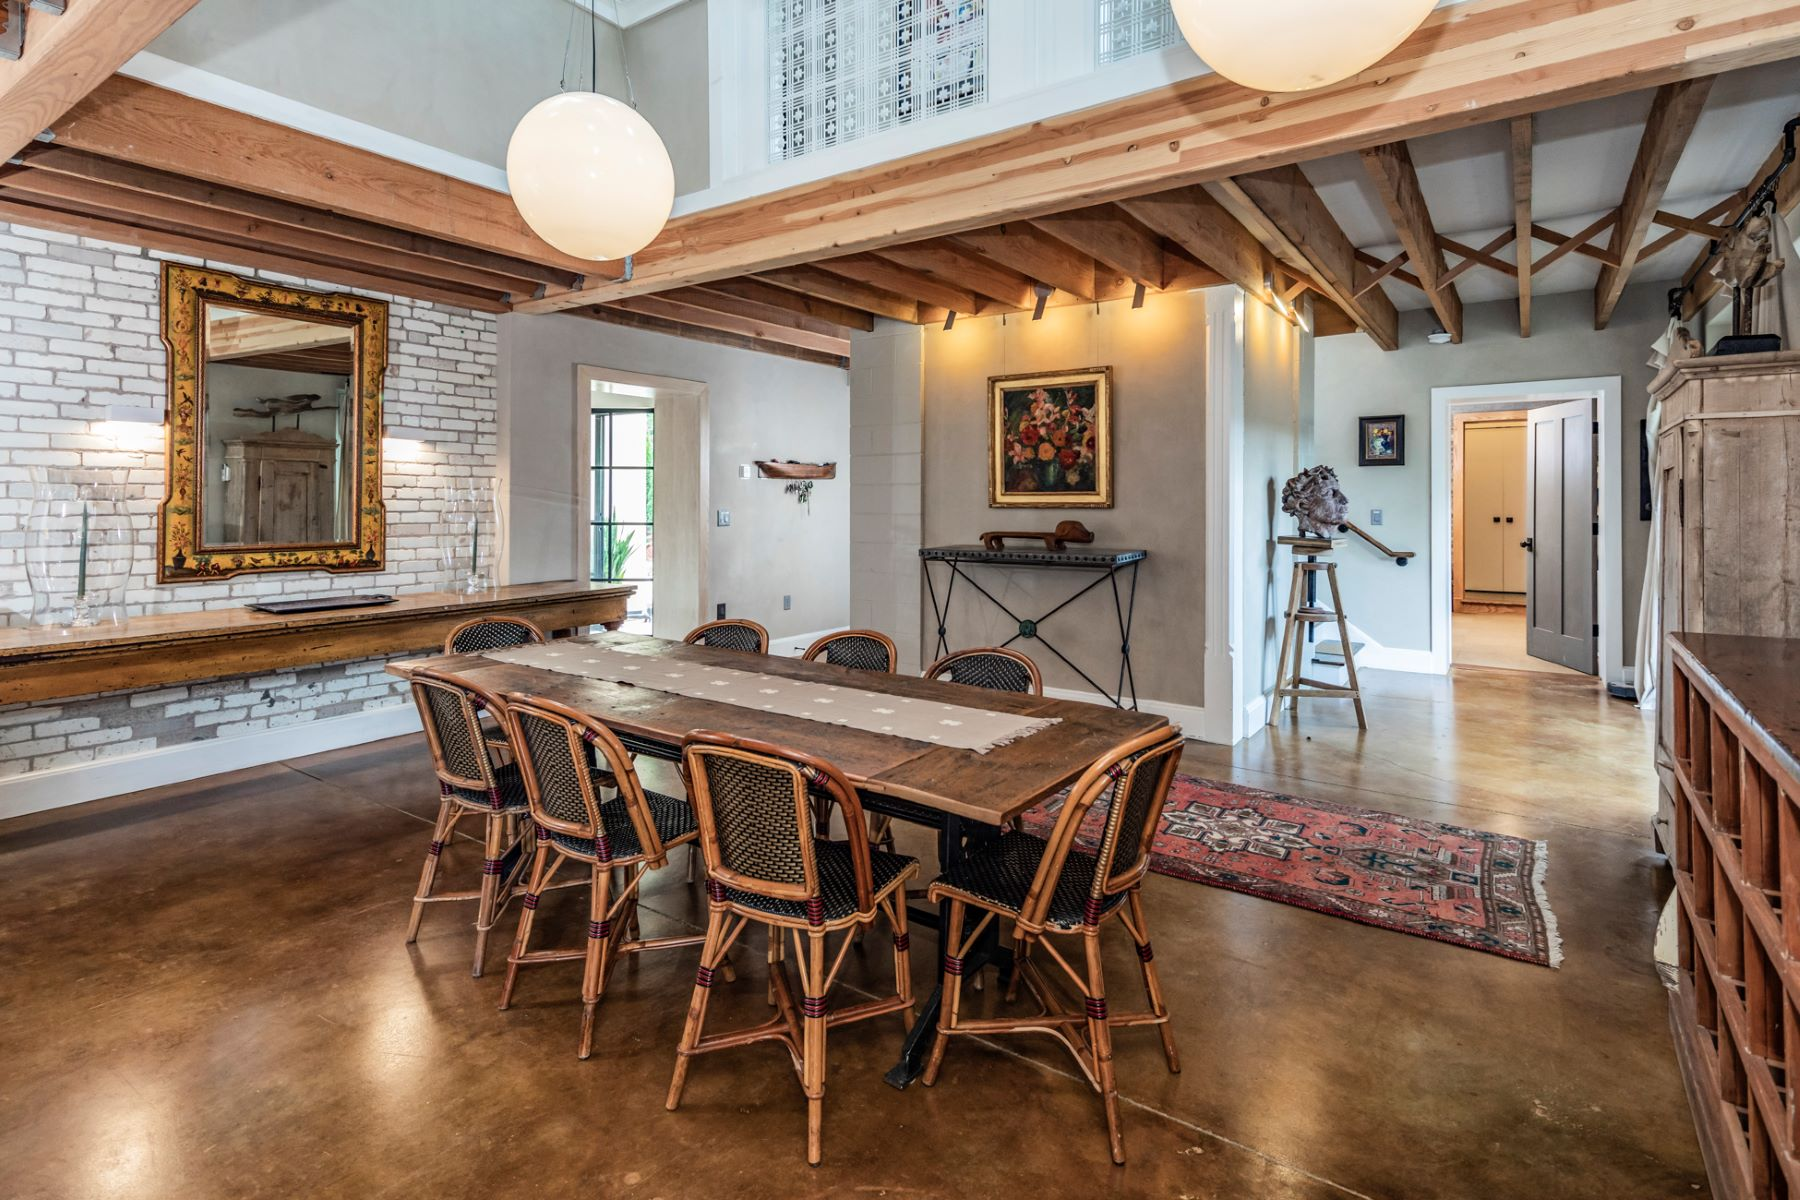 Additional photo for property listing at Masterful Mix of Great Warmth & Industrial Details 39 Market Street, Somerset, ニュージャージー 08873 アメリカ